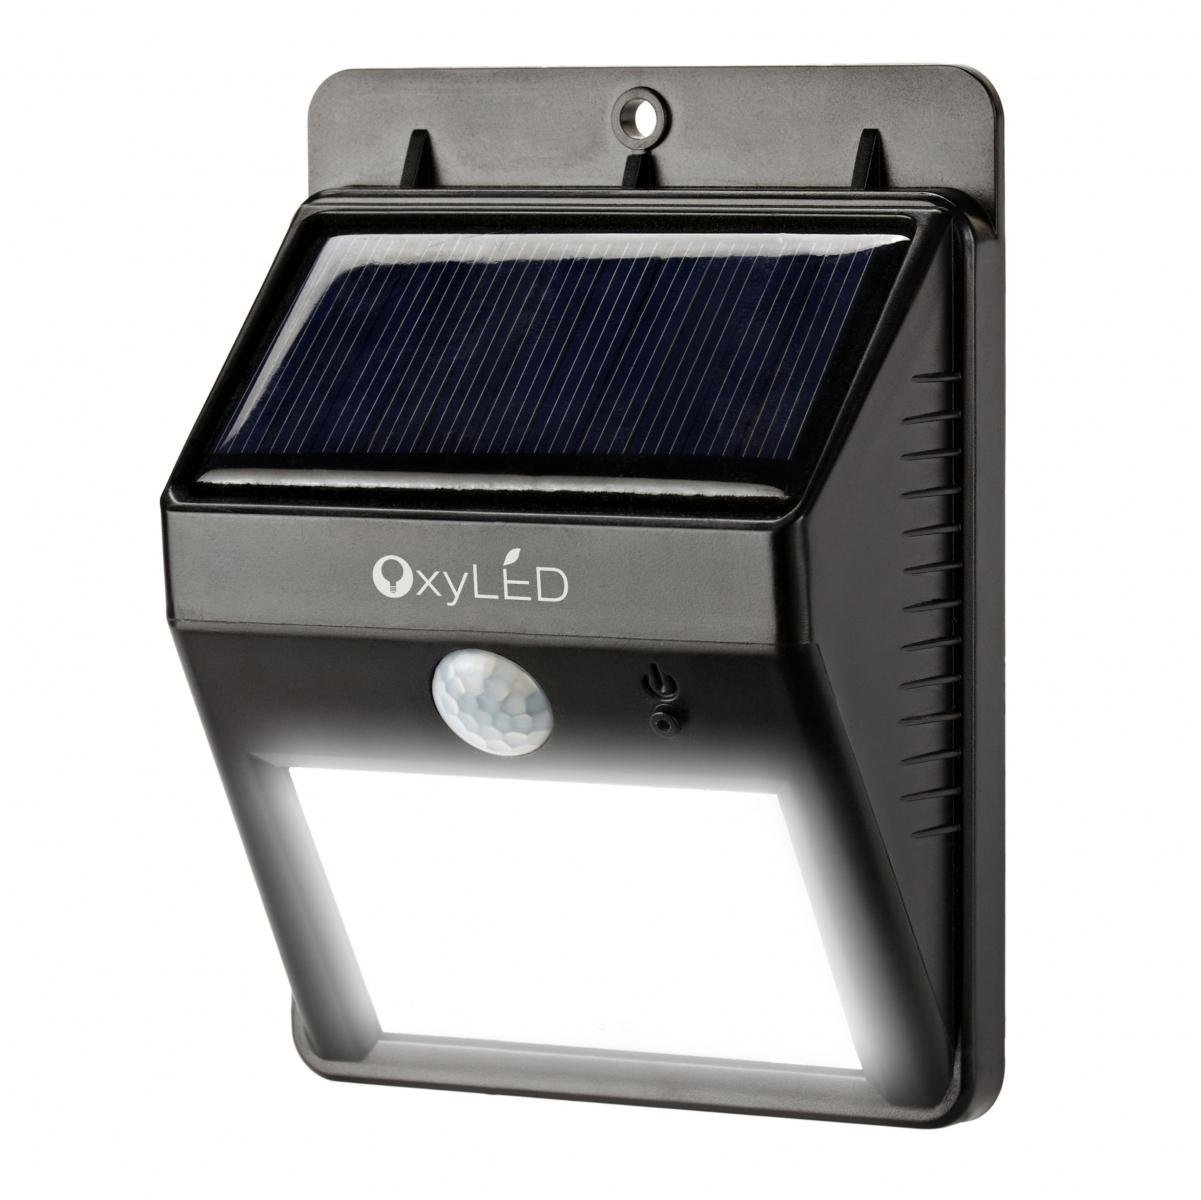 Oxyled Sl30 Bright Outdoor Led Light Solar Powered